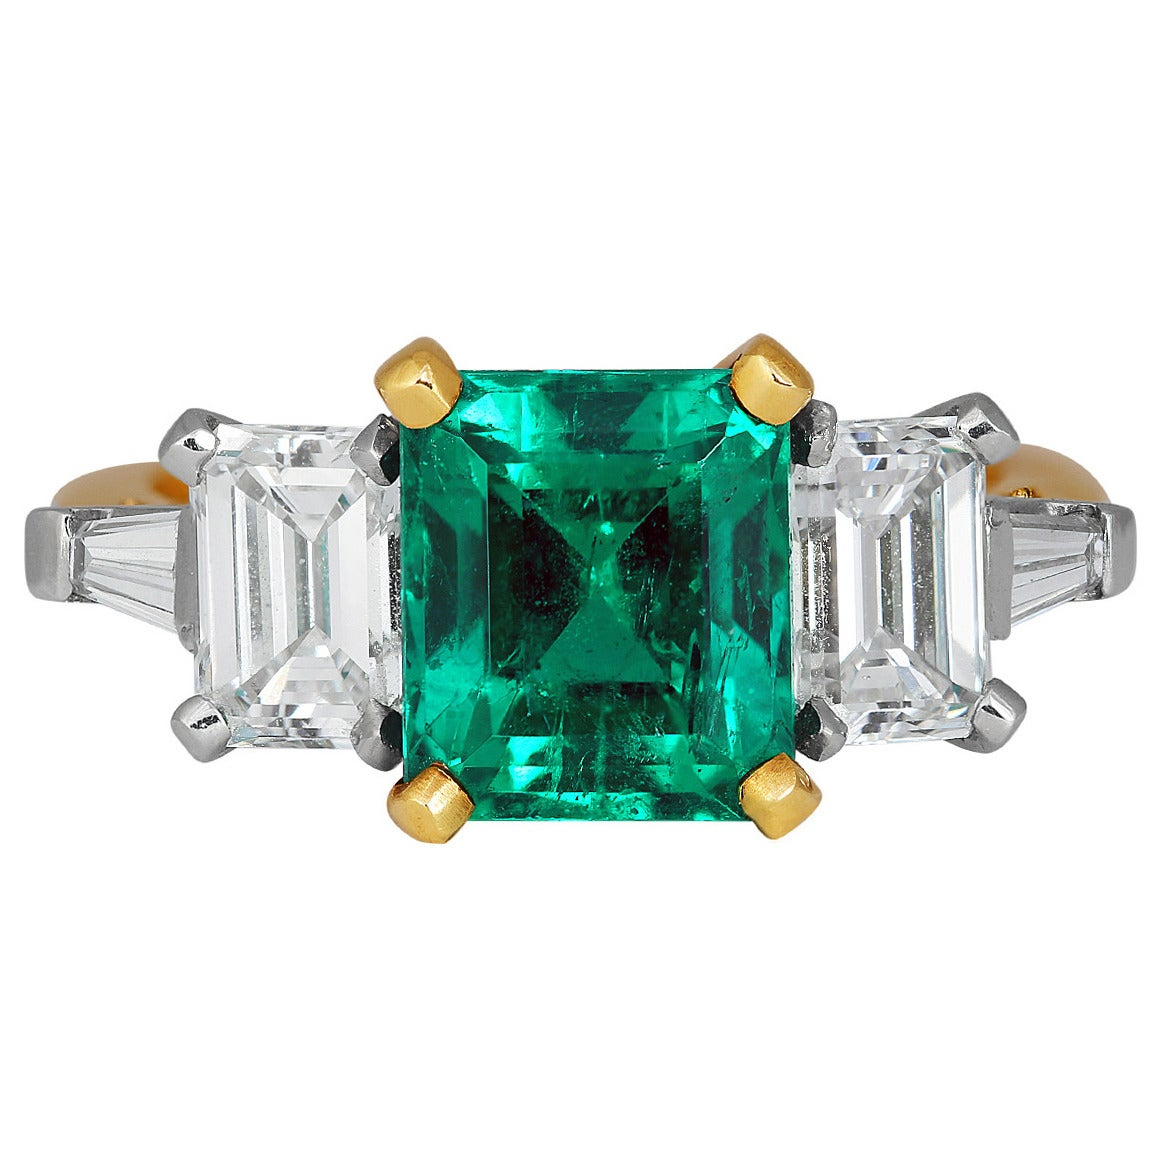 2.44 Carat Emerald Diamond Platinum Ring